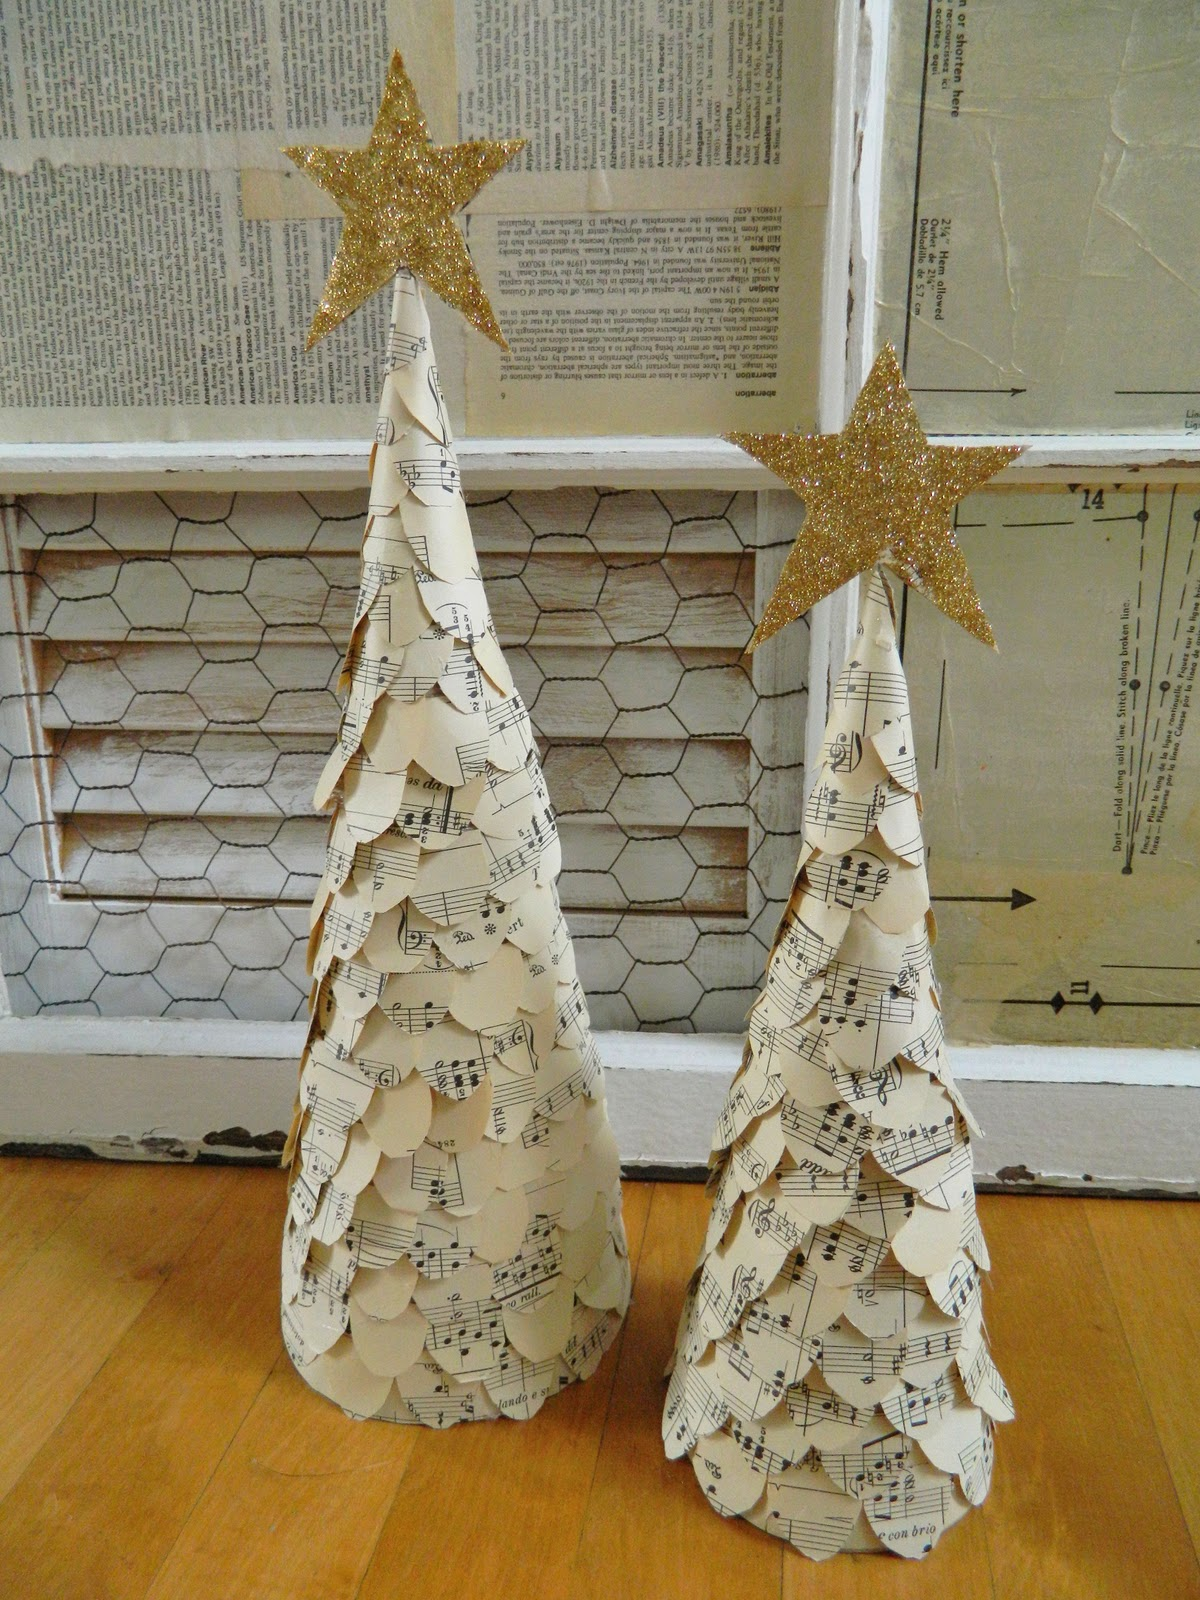 Sheet music christmas ornaments - These Are My Two Sheet Music Christmas Trees Not Too Hard To Make I Bought Some Cardboard Cones From Michael S Covered Them With Some Of My Vintage